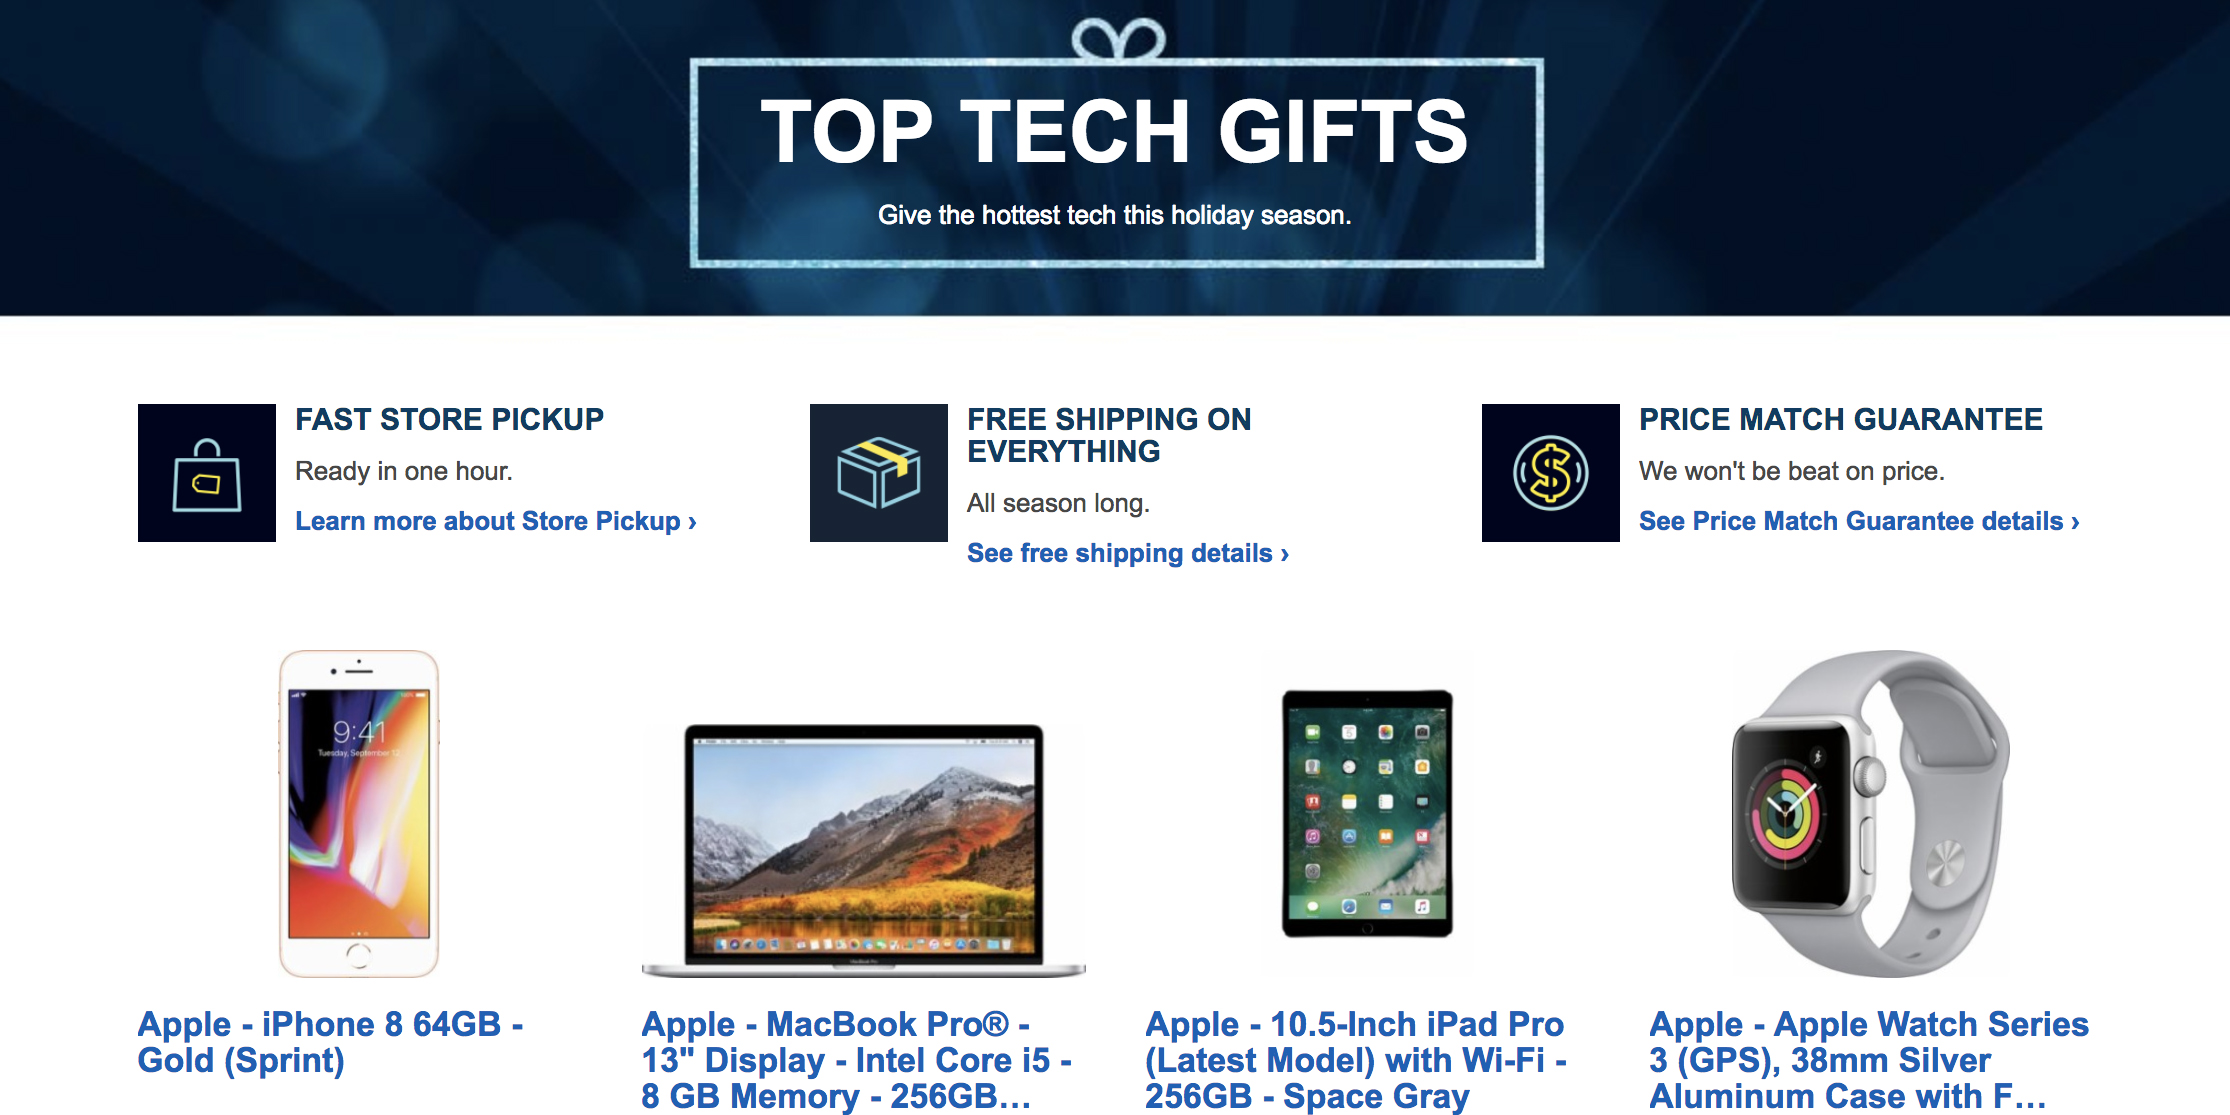 Best Buy releases Black Friday 2017 Gift Guide previewing upcoming deals, more